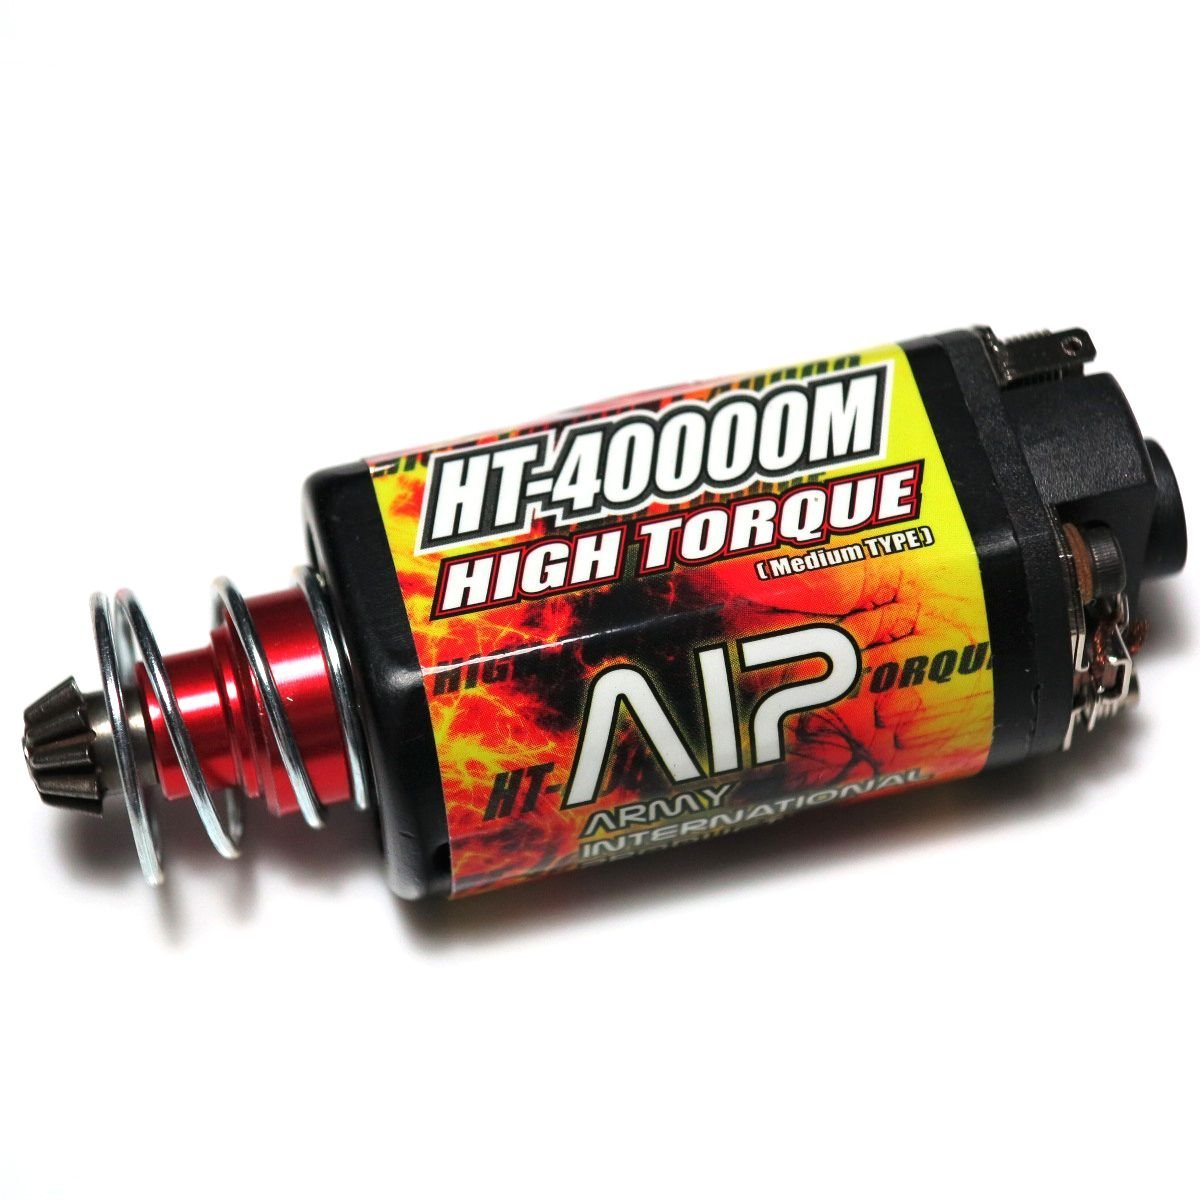 AEG Airsoft Wargame Shooting Gear AIP AIP020 AIP High Torque AEG Motor HT-40000 (Medium Type)